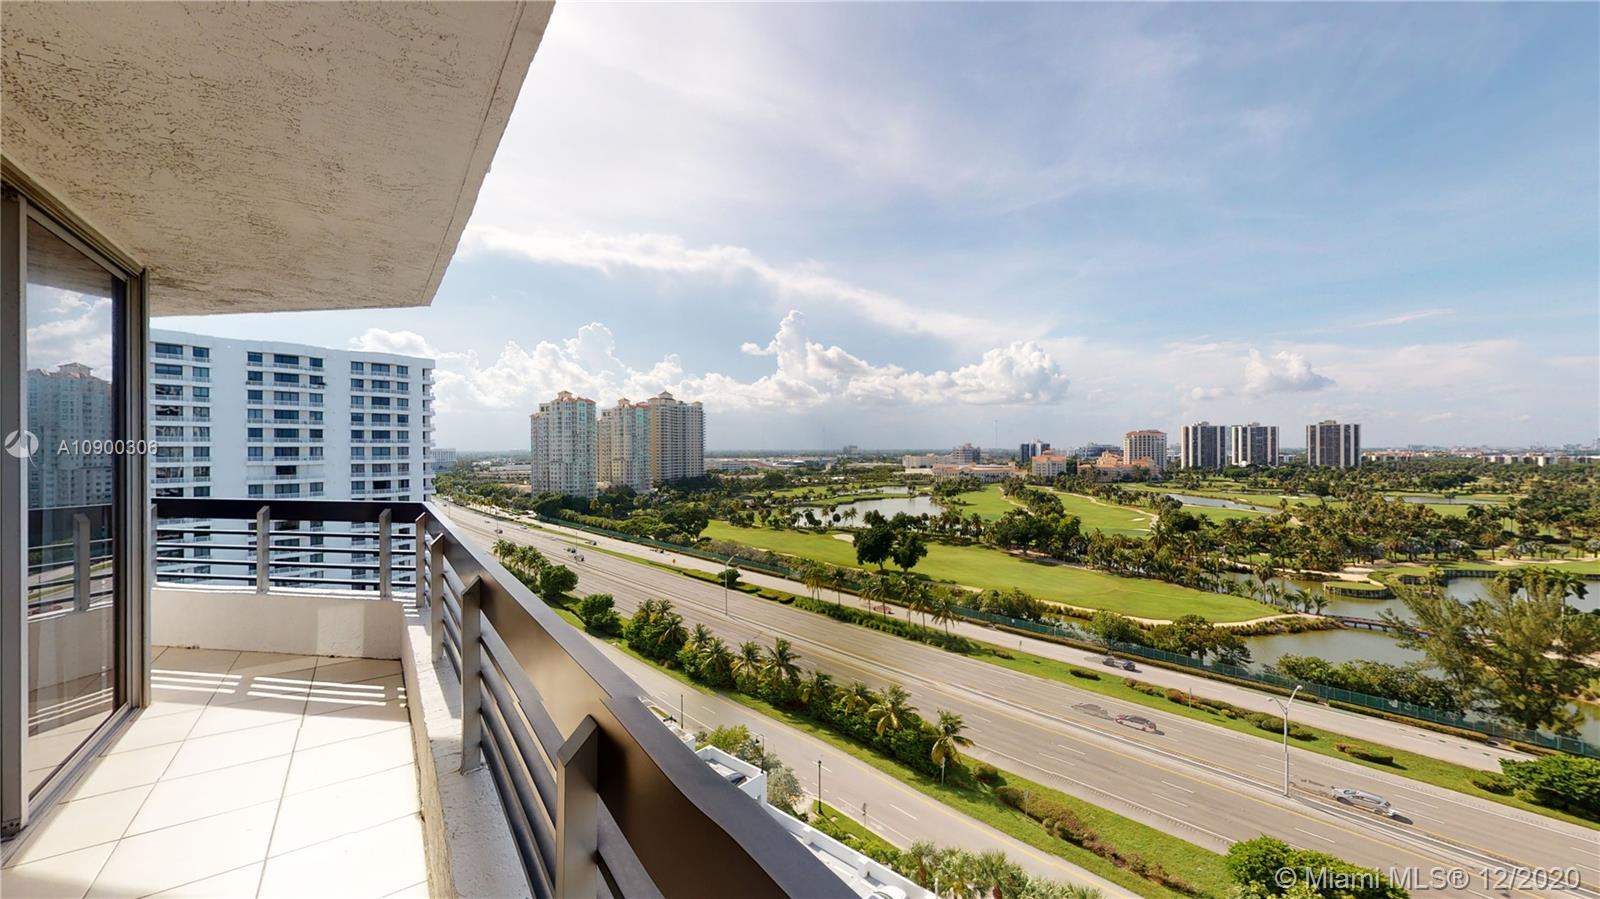 Mystic Pointe Tower 600 #1605 - 3400 NE 192nd St #1605, Aventura, FL 33180